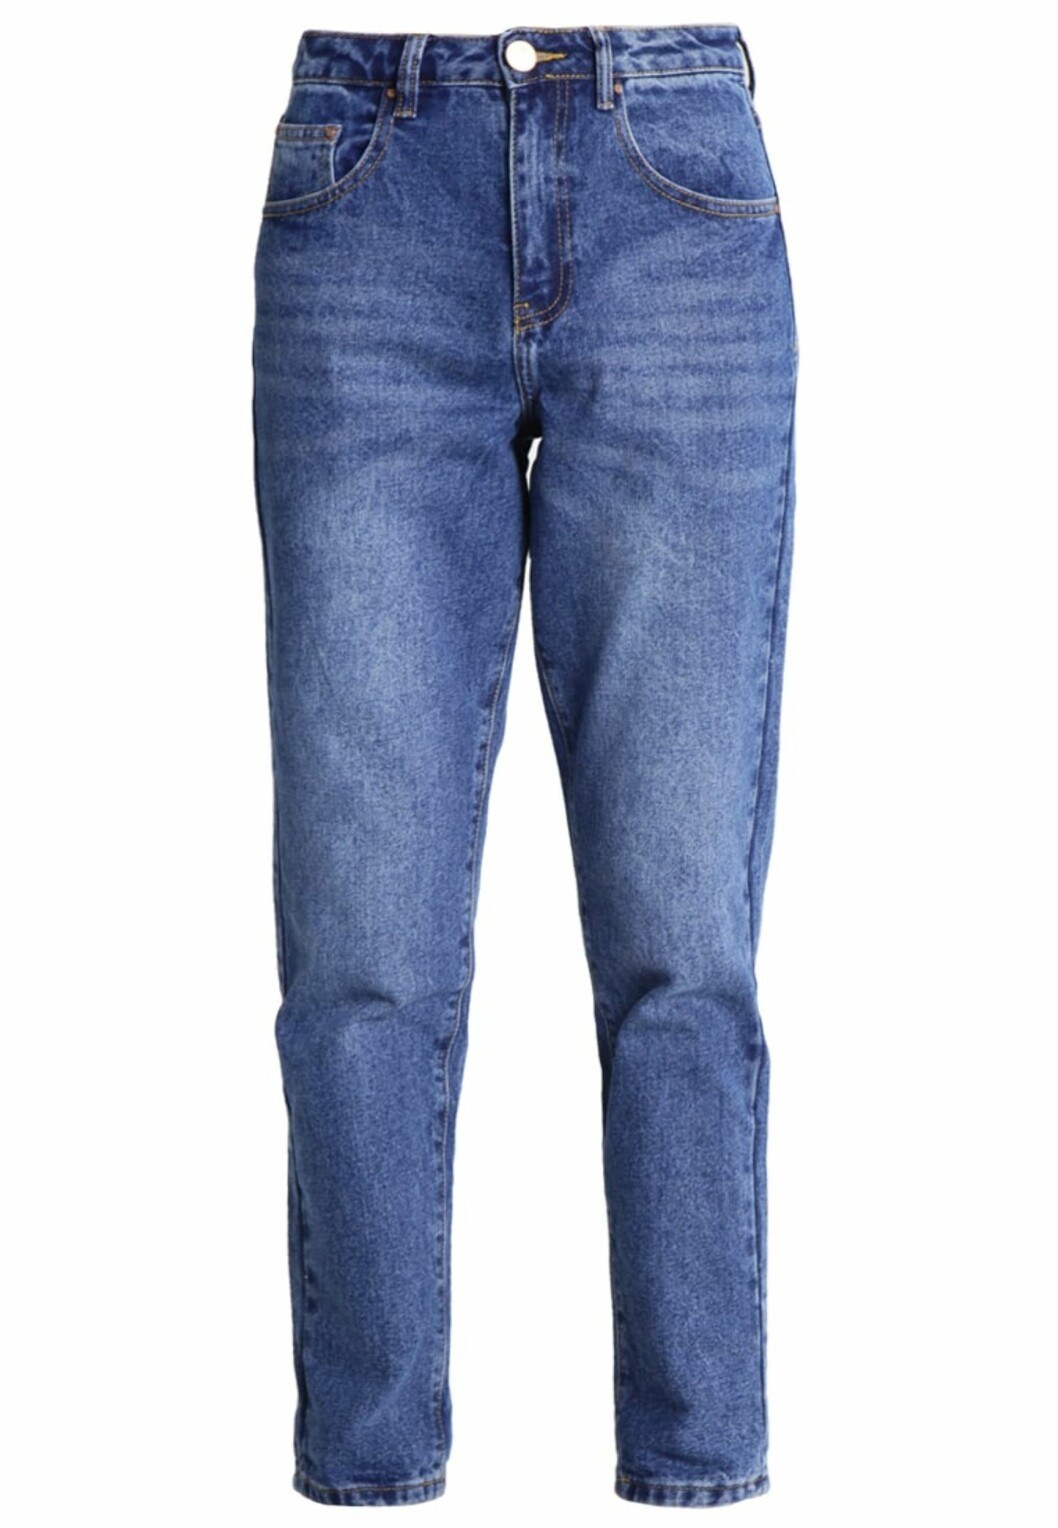 Jeans fra Lost Ink via Zalando.no, kr 449.